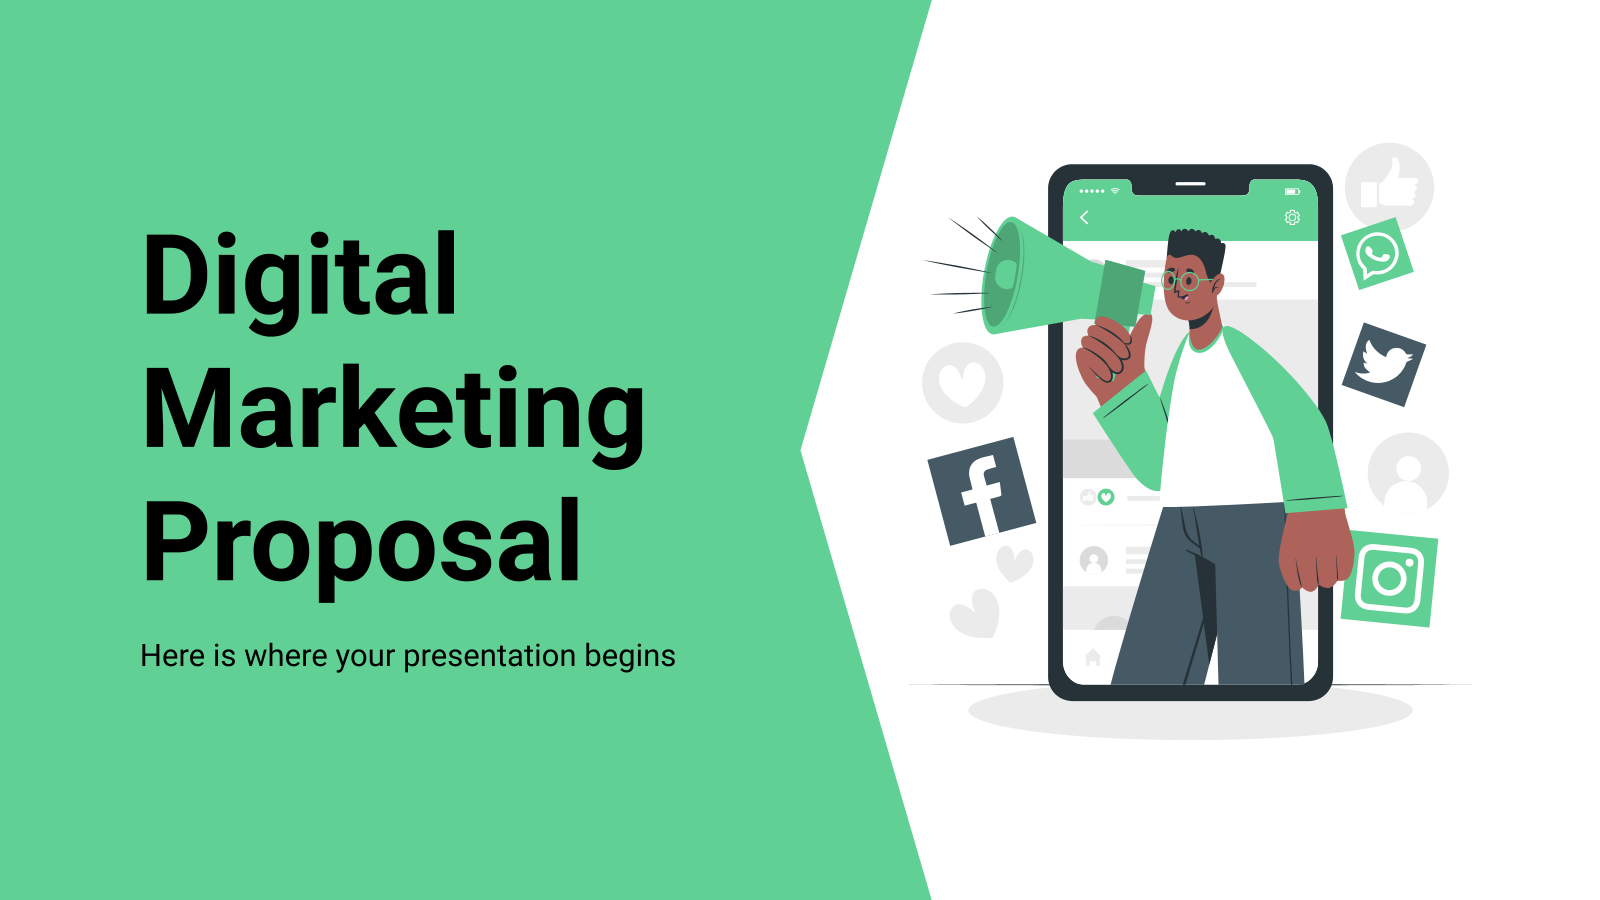 Digital Marketing Proposal presentation template